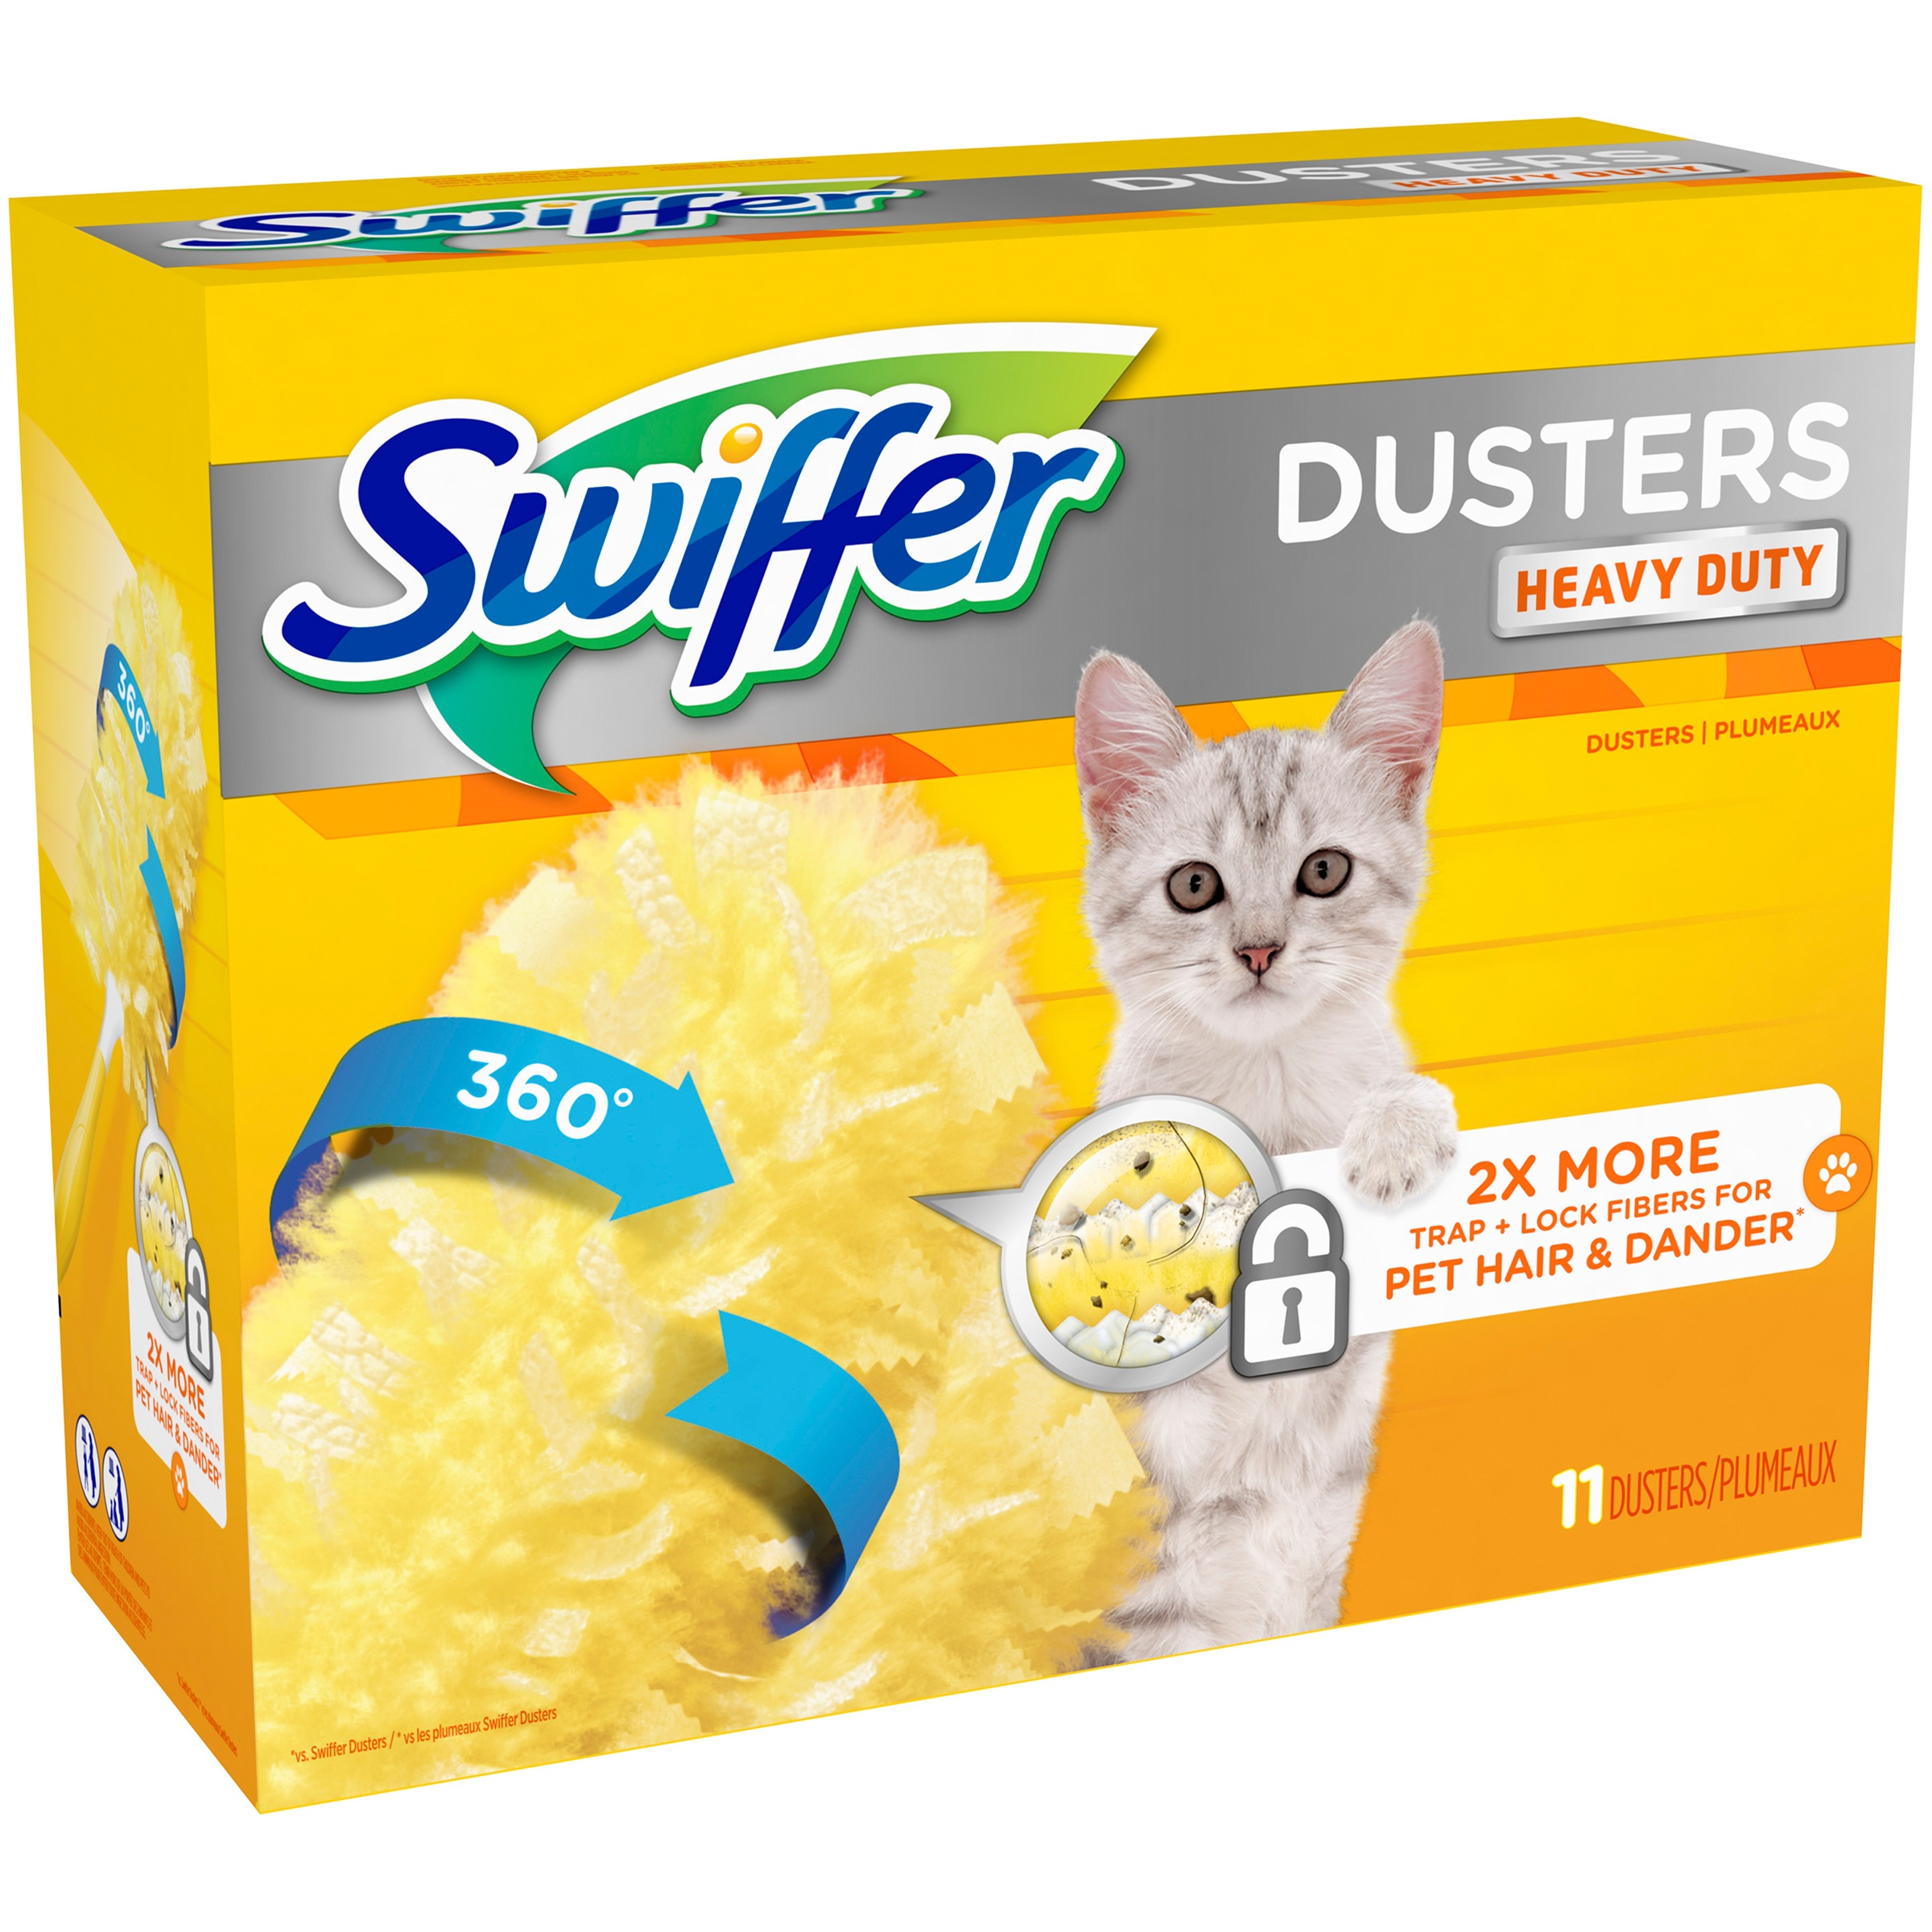 Swiffer 360° Heavy Duty Dusters 11 ct Box